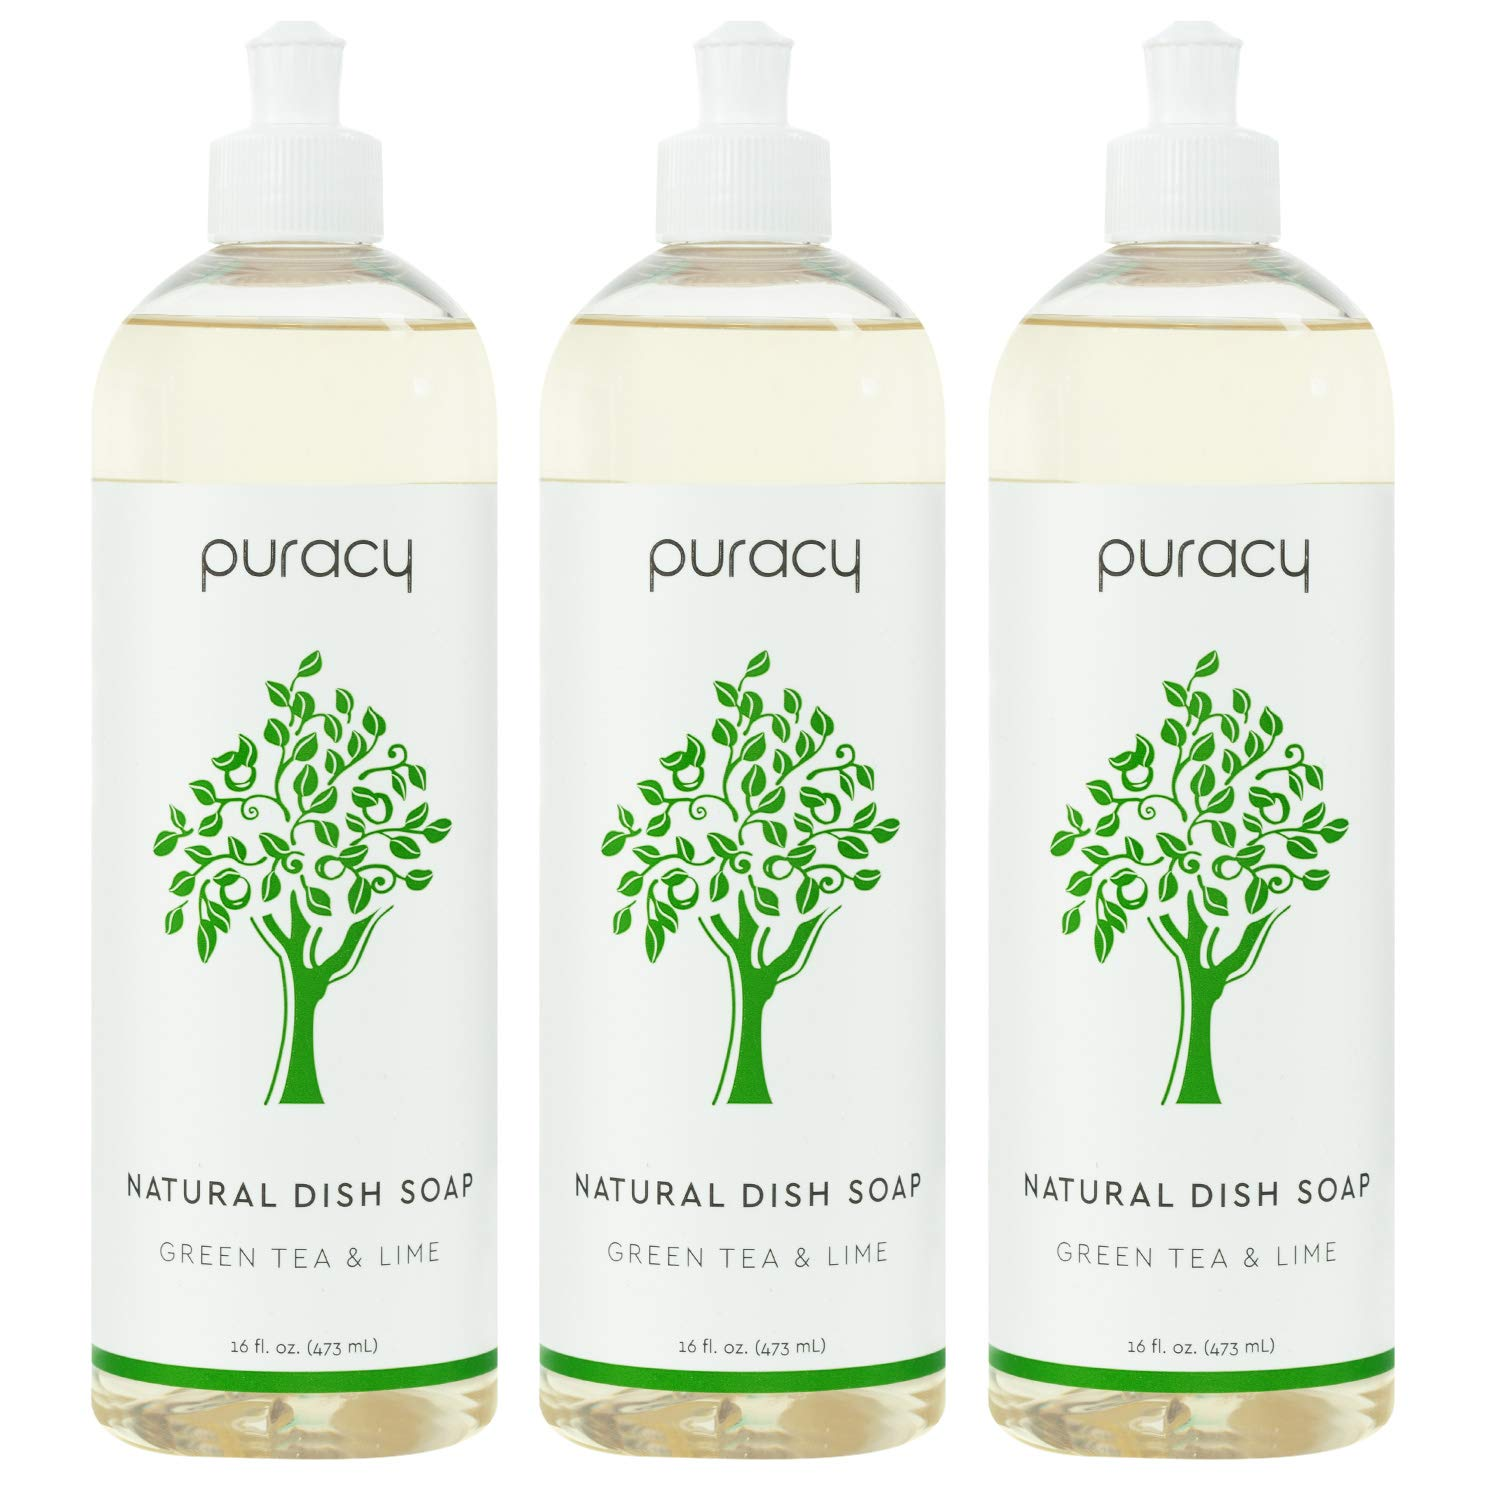 Puracy Natural Dish Soap, Green Tea & Lime, Sulfate-Free, Natural Liquid Detergent, 16 Fl Oz (3-Pack)                Puracy Natural Dish Soap Refill, Green Tea & Lime, 64 Ounce, Hypoallergenic Non-Drying Liquid Detergent                Puracy Natural Dish Soap Refill, Organic Lemongrass, 64 Ounce, Skin-Friendly Liquid Detergent                Better Life Tough on Grease & Gentle on Hands Sulfate Free Dish Soap Lemon Mint, 22 Fl Oz                Puracy Platinum Dishwasher Detergent Pods, 50 Count, Natural Enzyme Powder Tablets, Spot & Residue-Free Dish Packs, Free & Clear